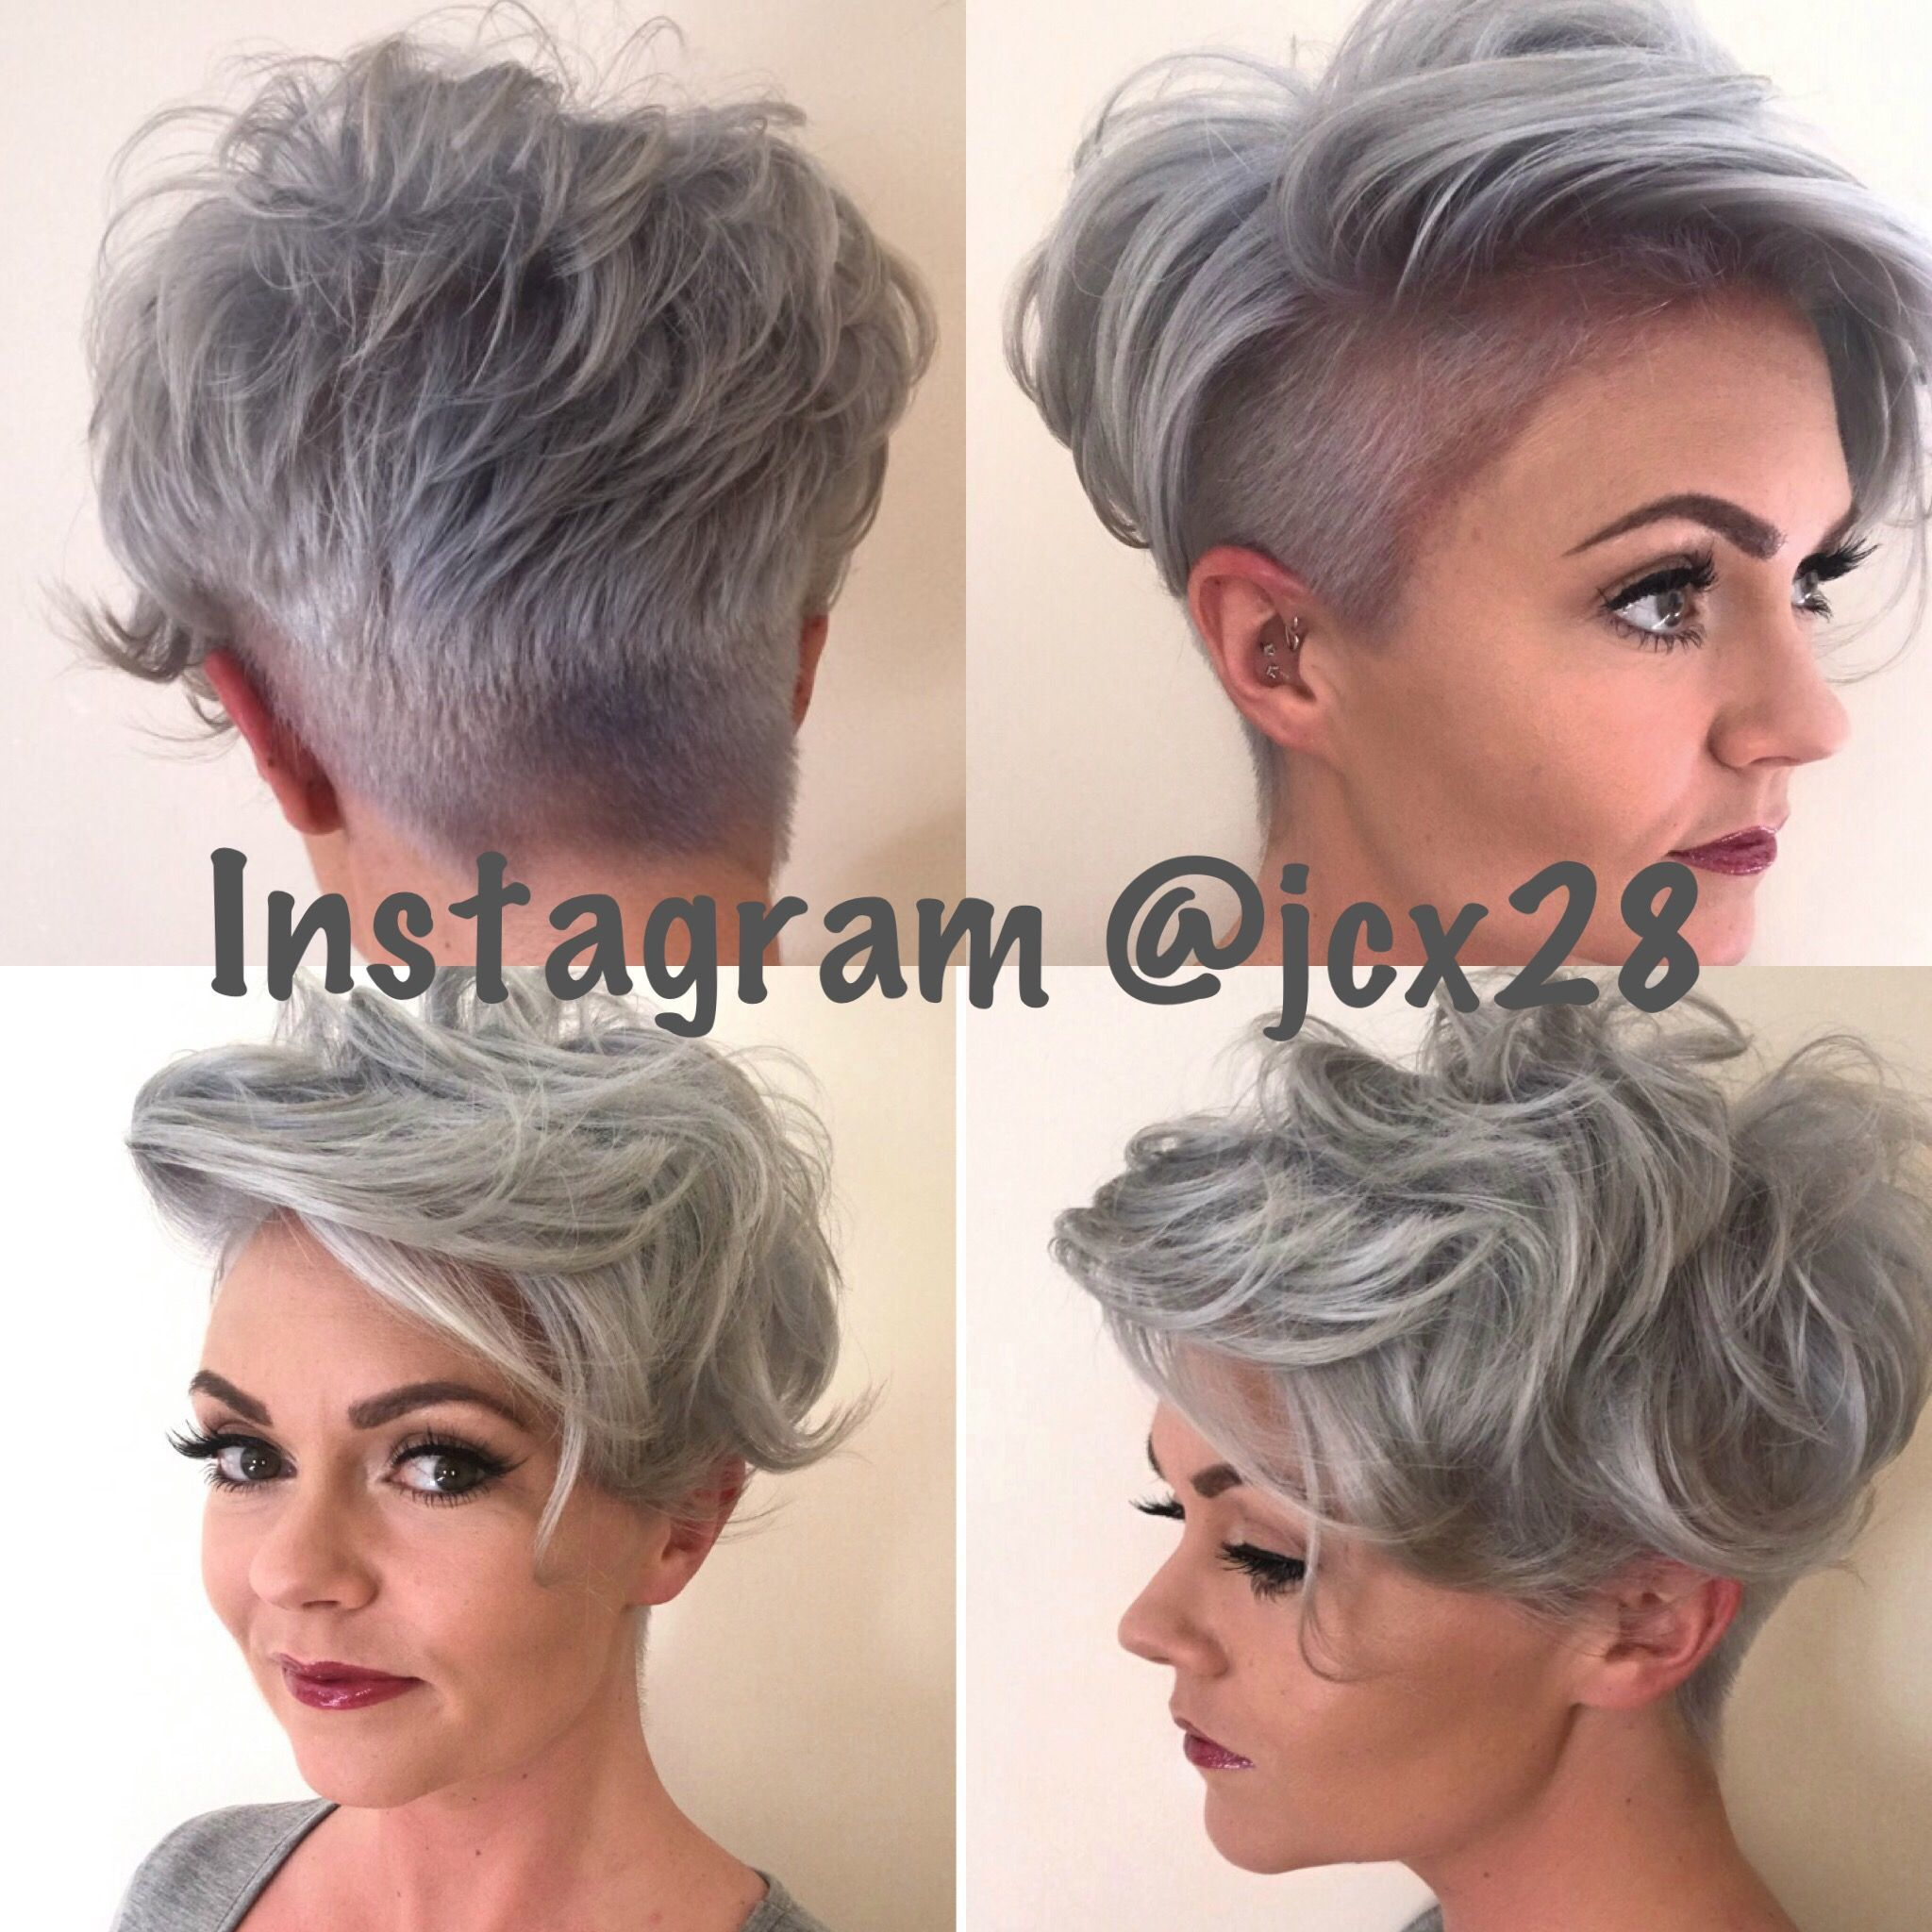 Trendy Undercut Short Hairstyles in 12  Edgy pixie haircuts